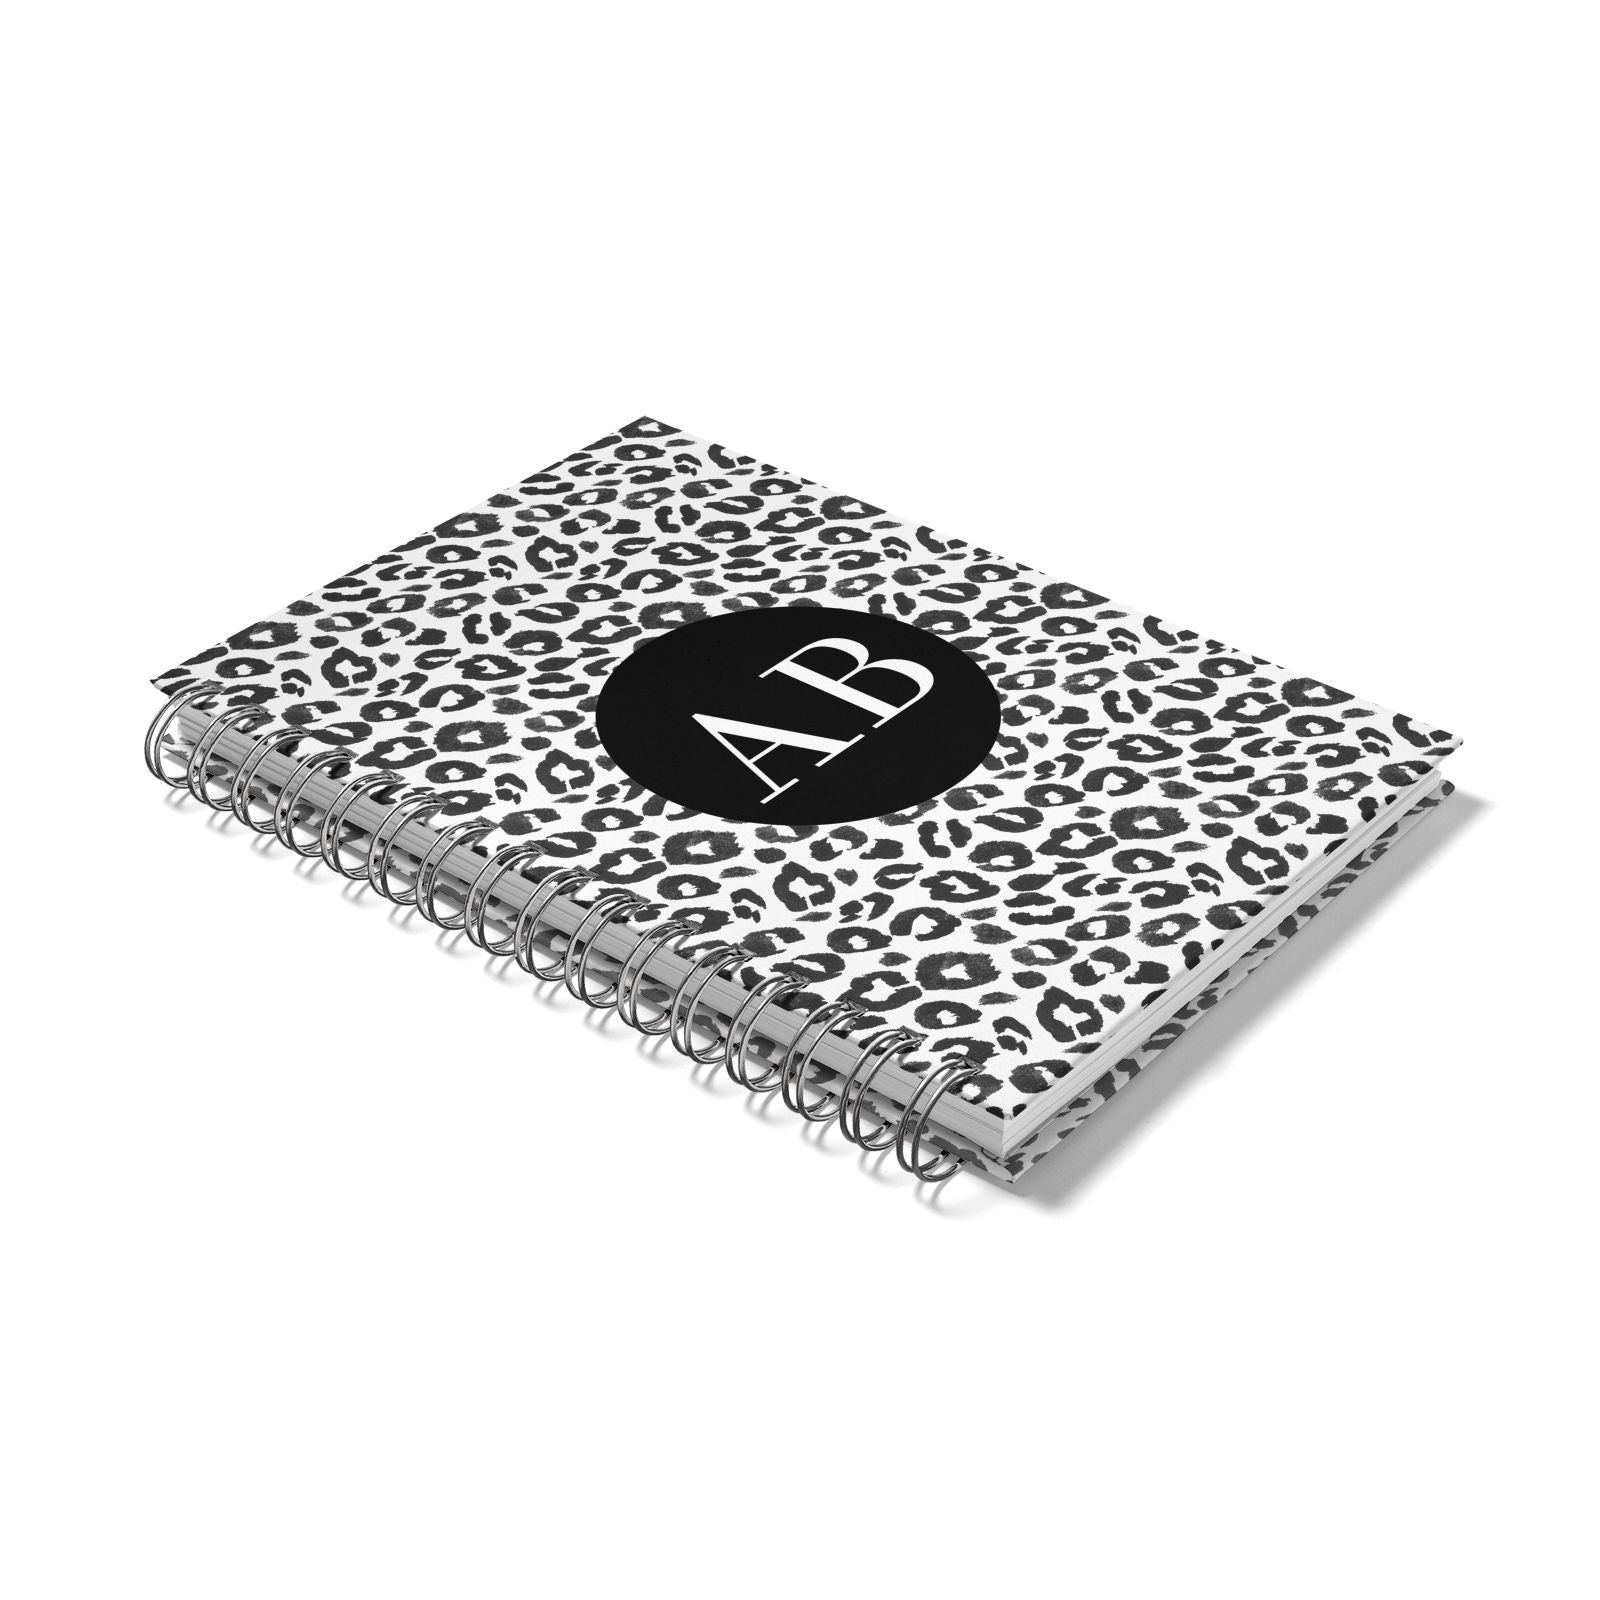 Leopard Print Black and White Notebook with Silver Coil Laid Flat